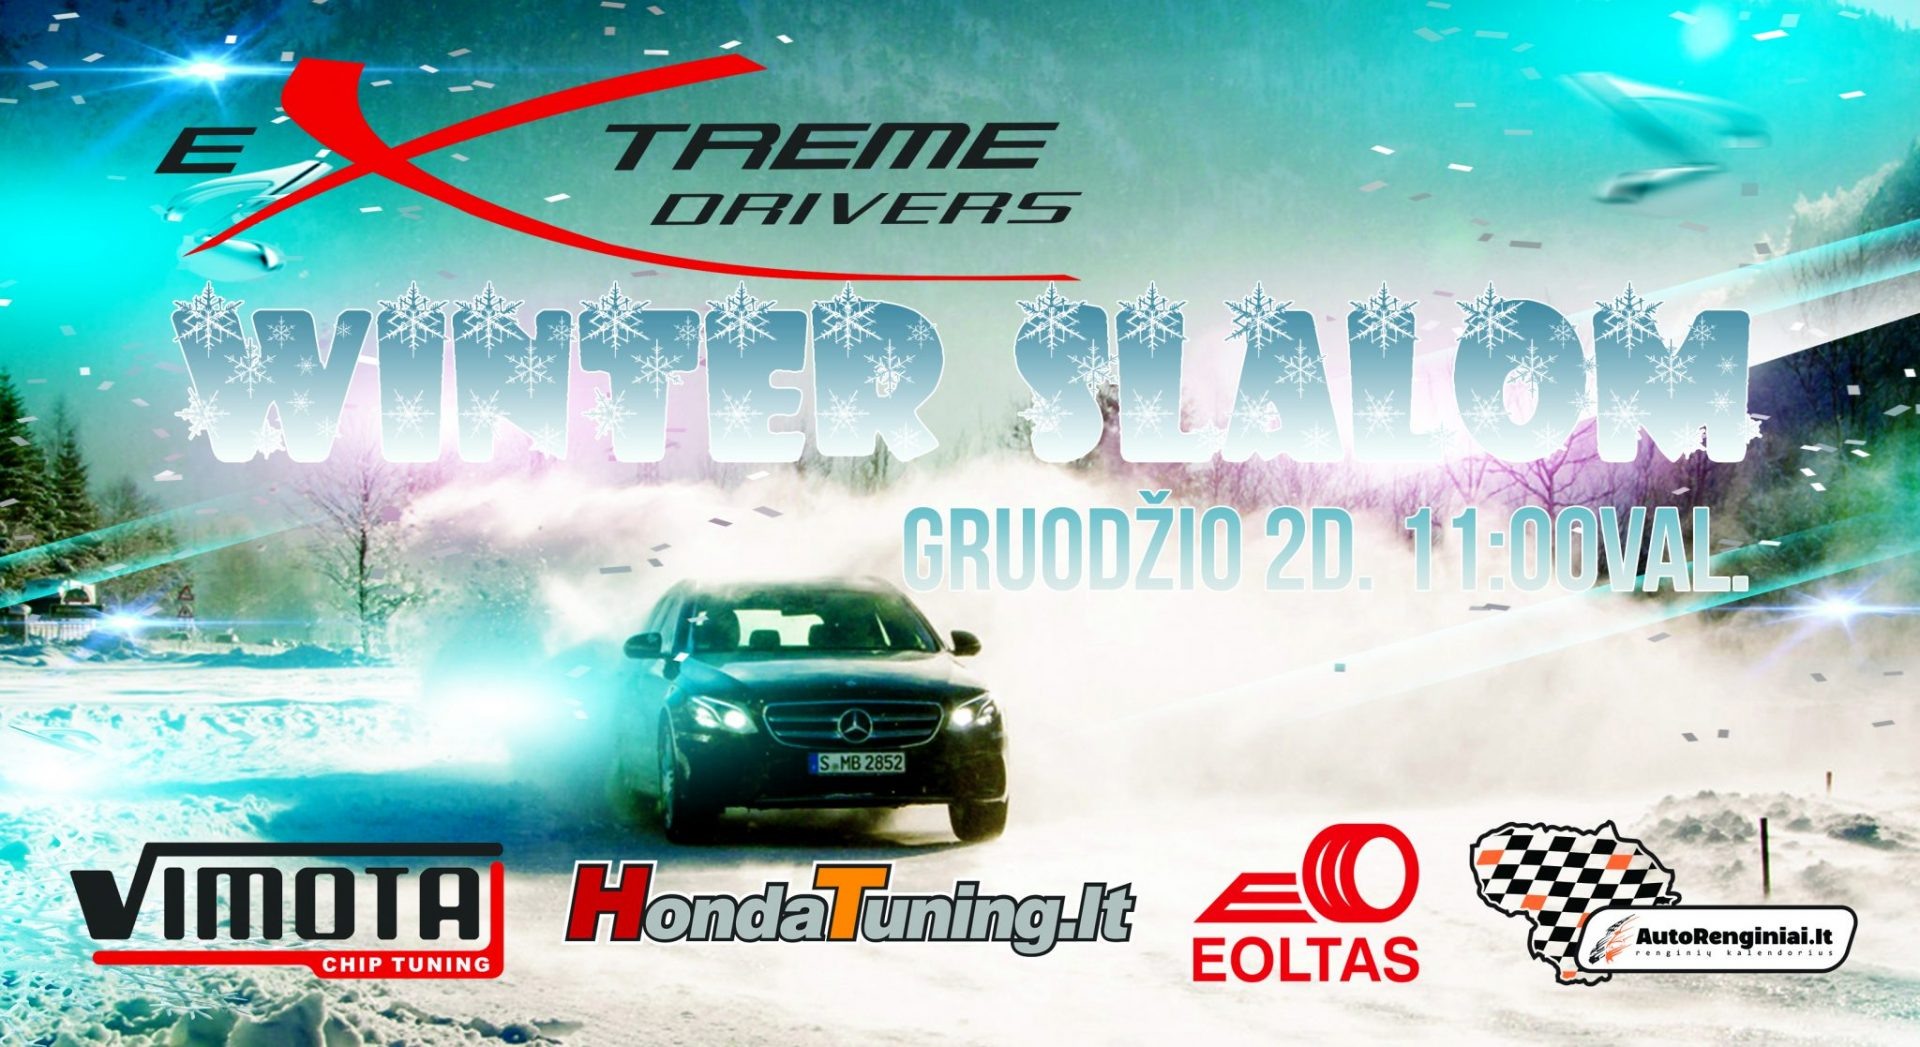 eXtreme drivers Winter Slalom